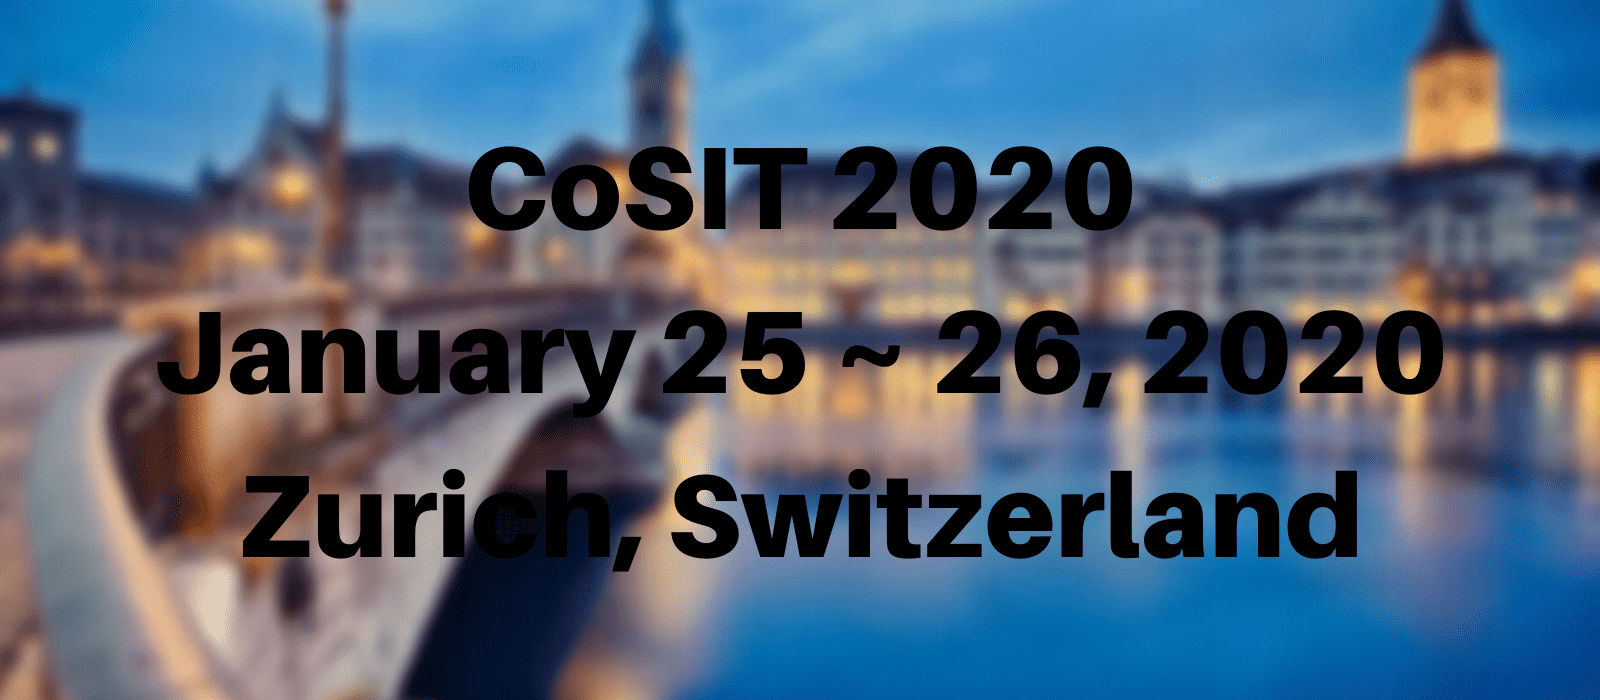 7th International Conference on Computer Science and Information Technology (CoSIT 2020)